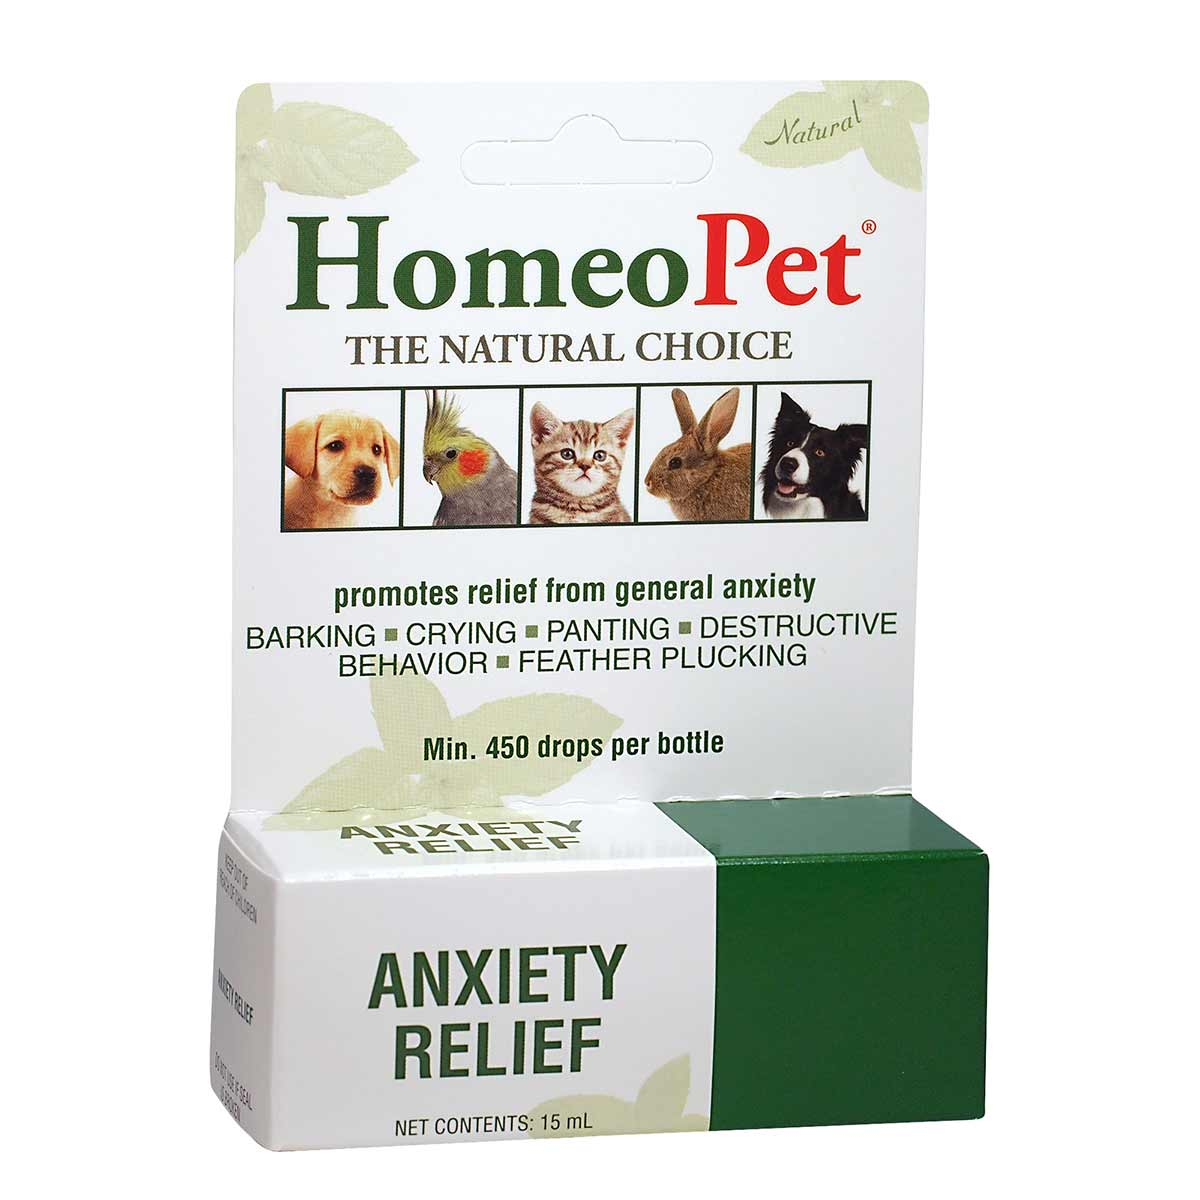 Natural HomeoPet® Anxiety Relief for Dogs and Cats